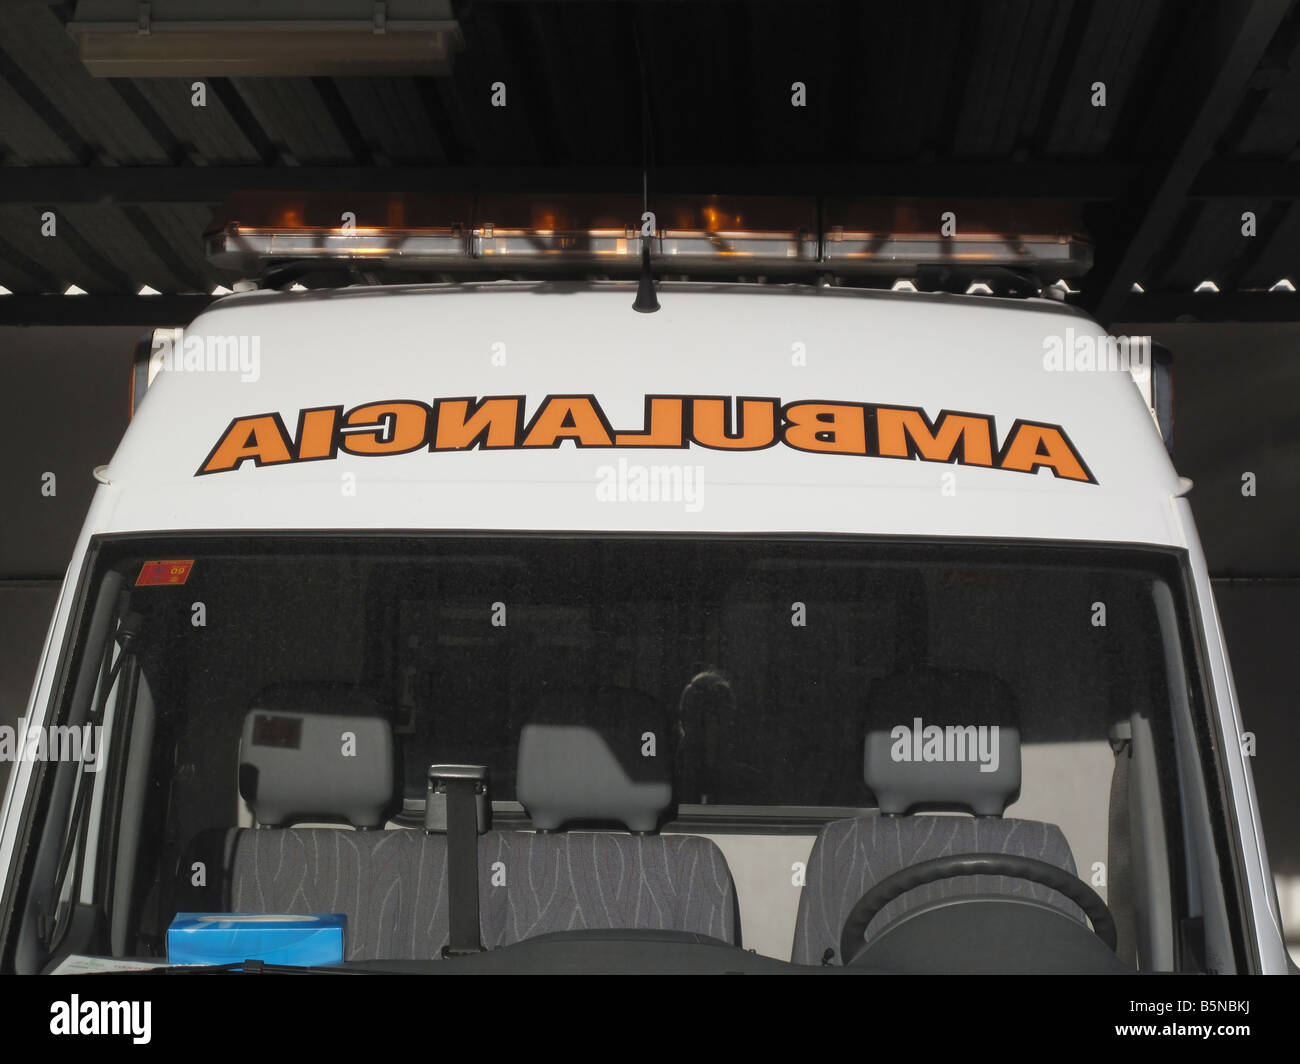 Spanish word for ambulance written backwards on vehicle so that drivers ahead can recognize word in their rear vision - Stock Image